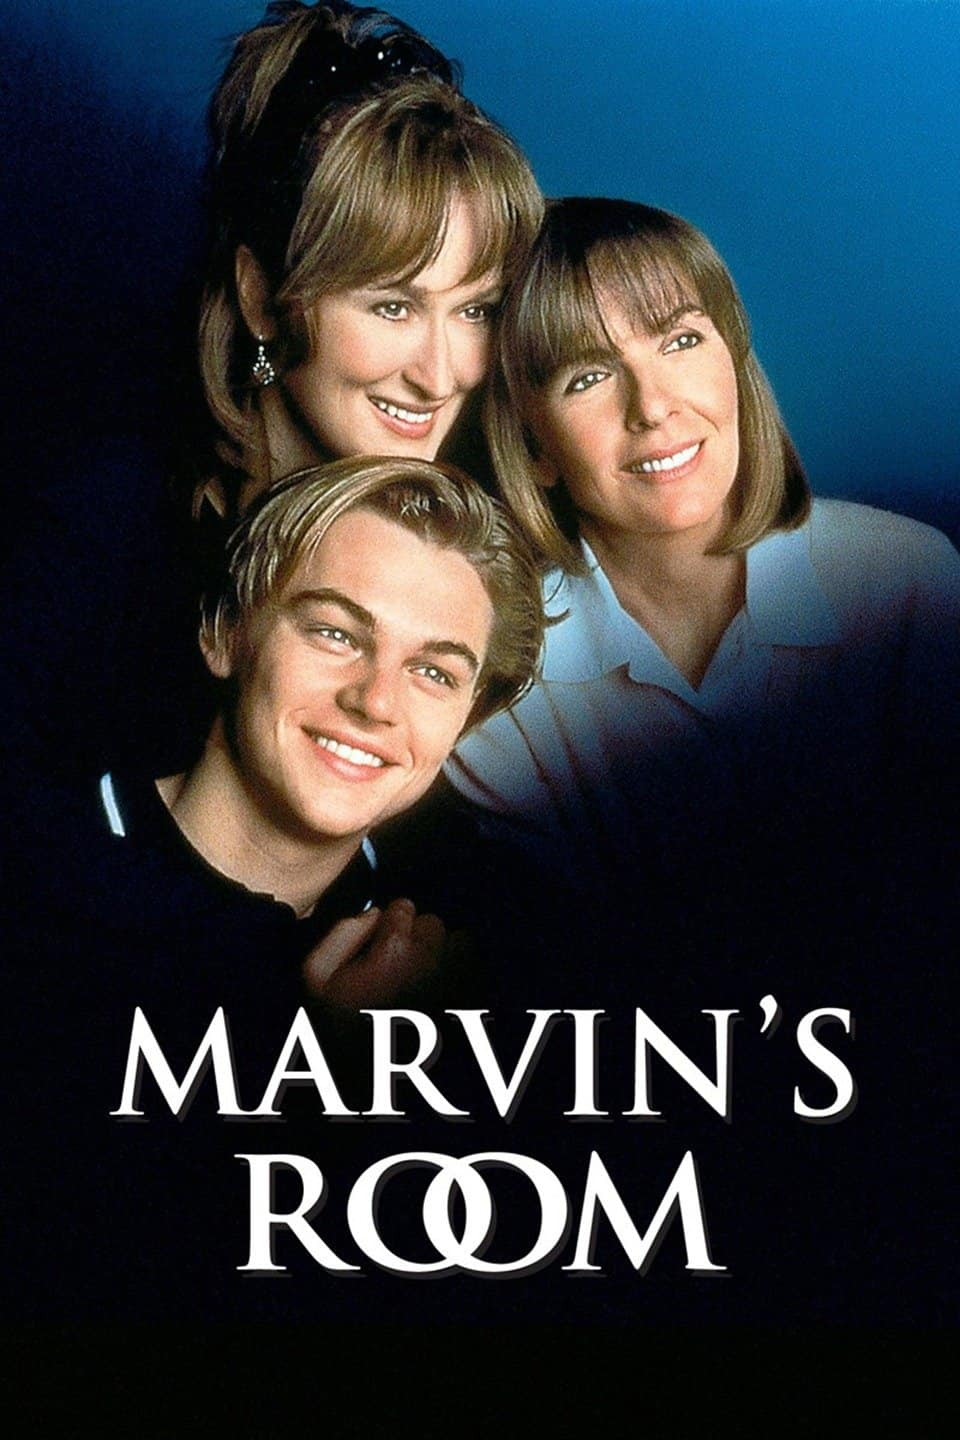 Marvin's Room, 1996